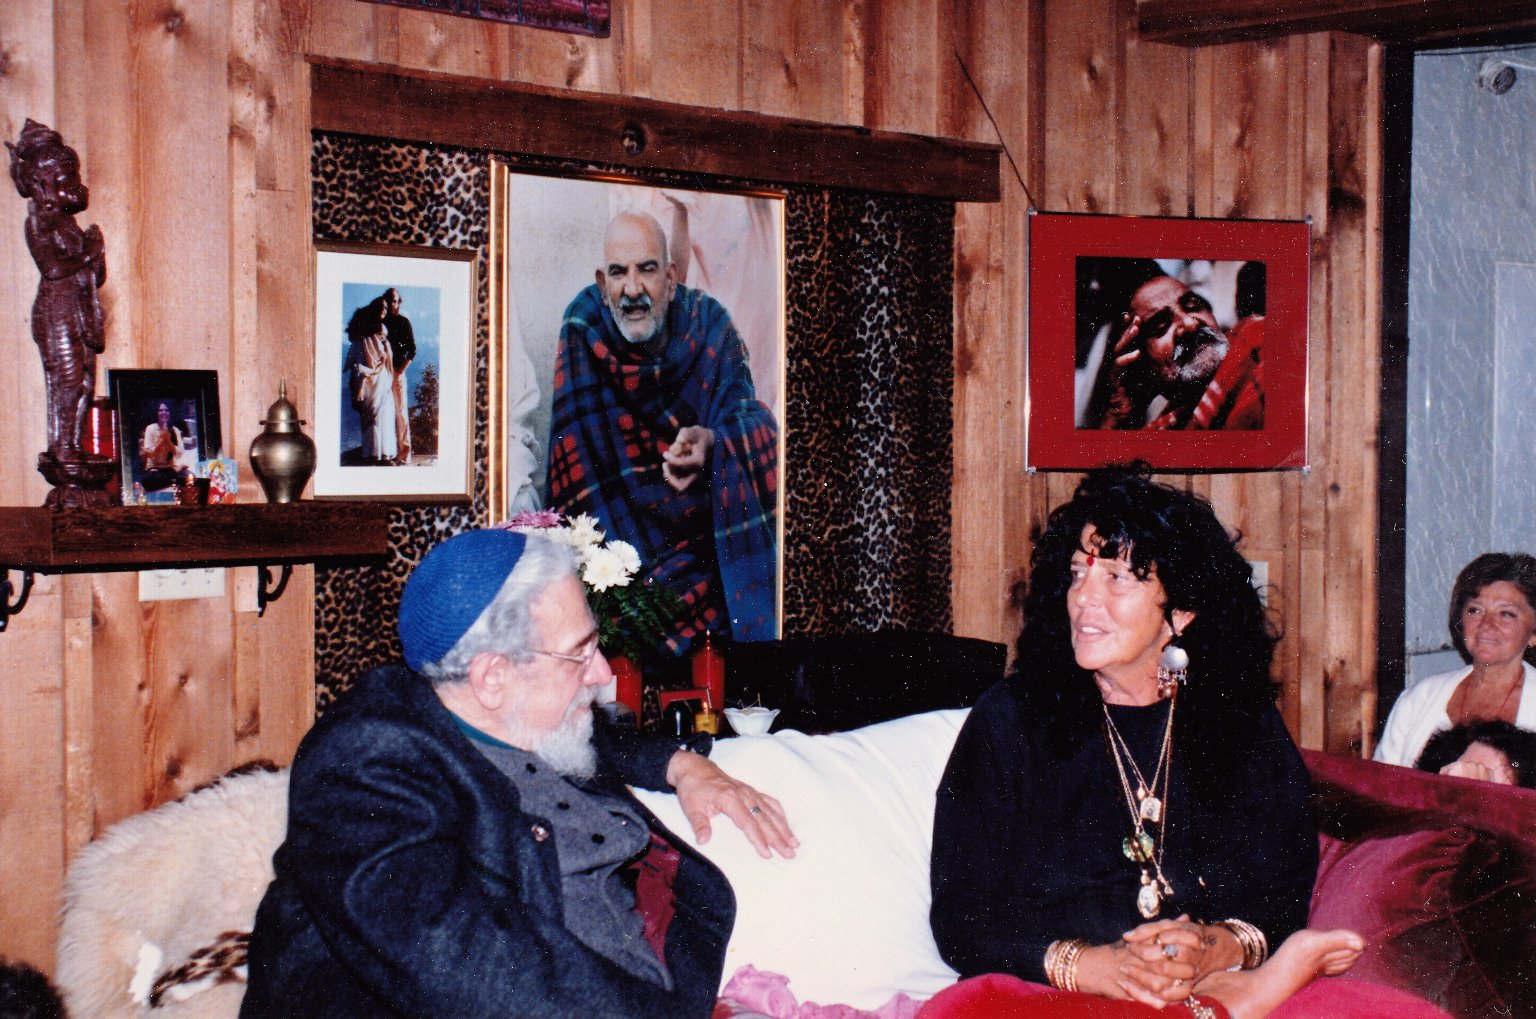 Rabbi Zalman Schachter-Shalomi and Ma Jaya Sati Bhagavati in dialogue on his first visit to Kashi Ashram, ca. 1991.